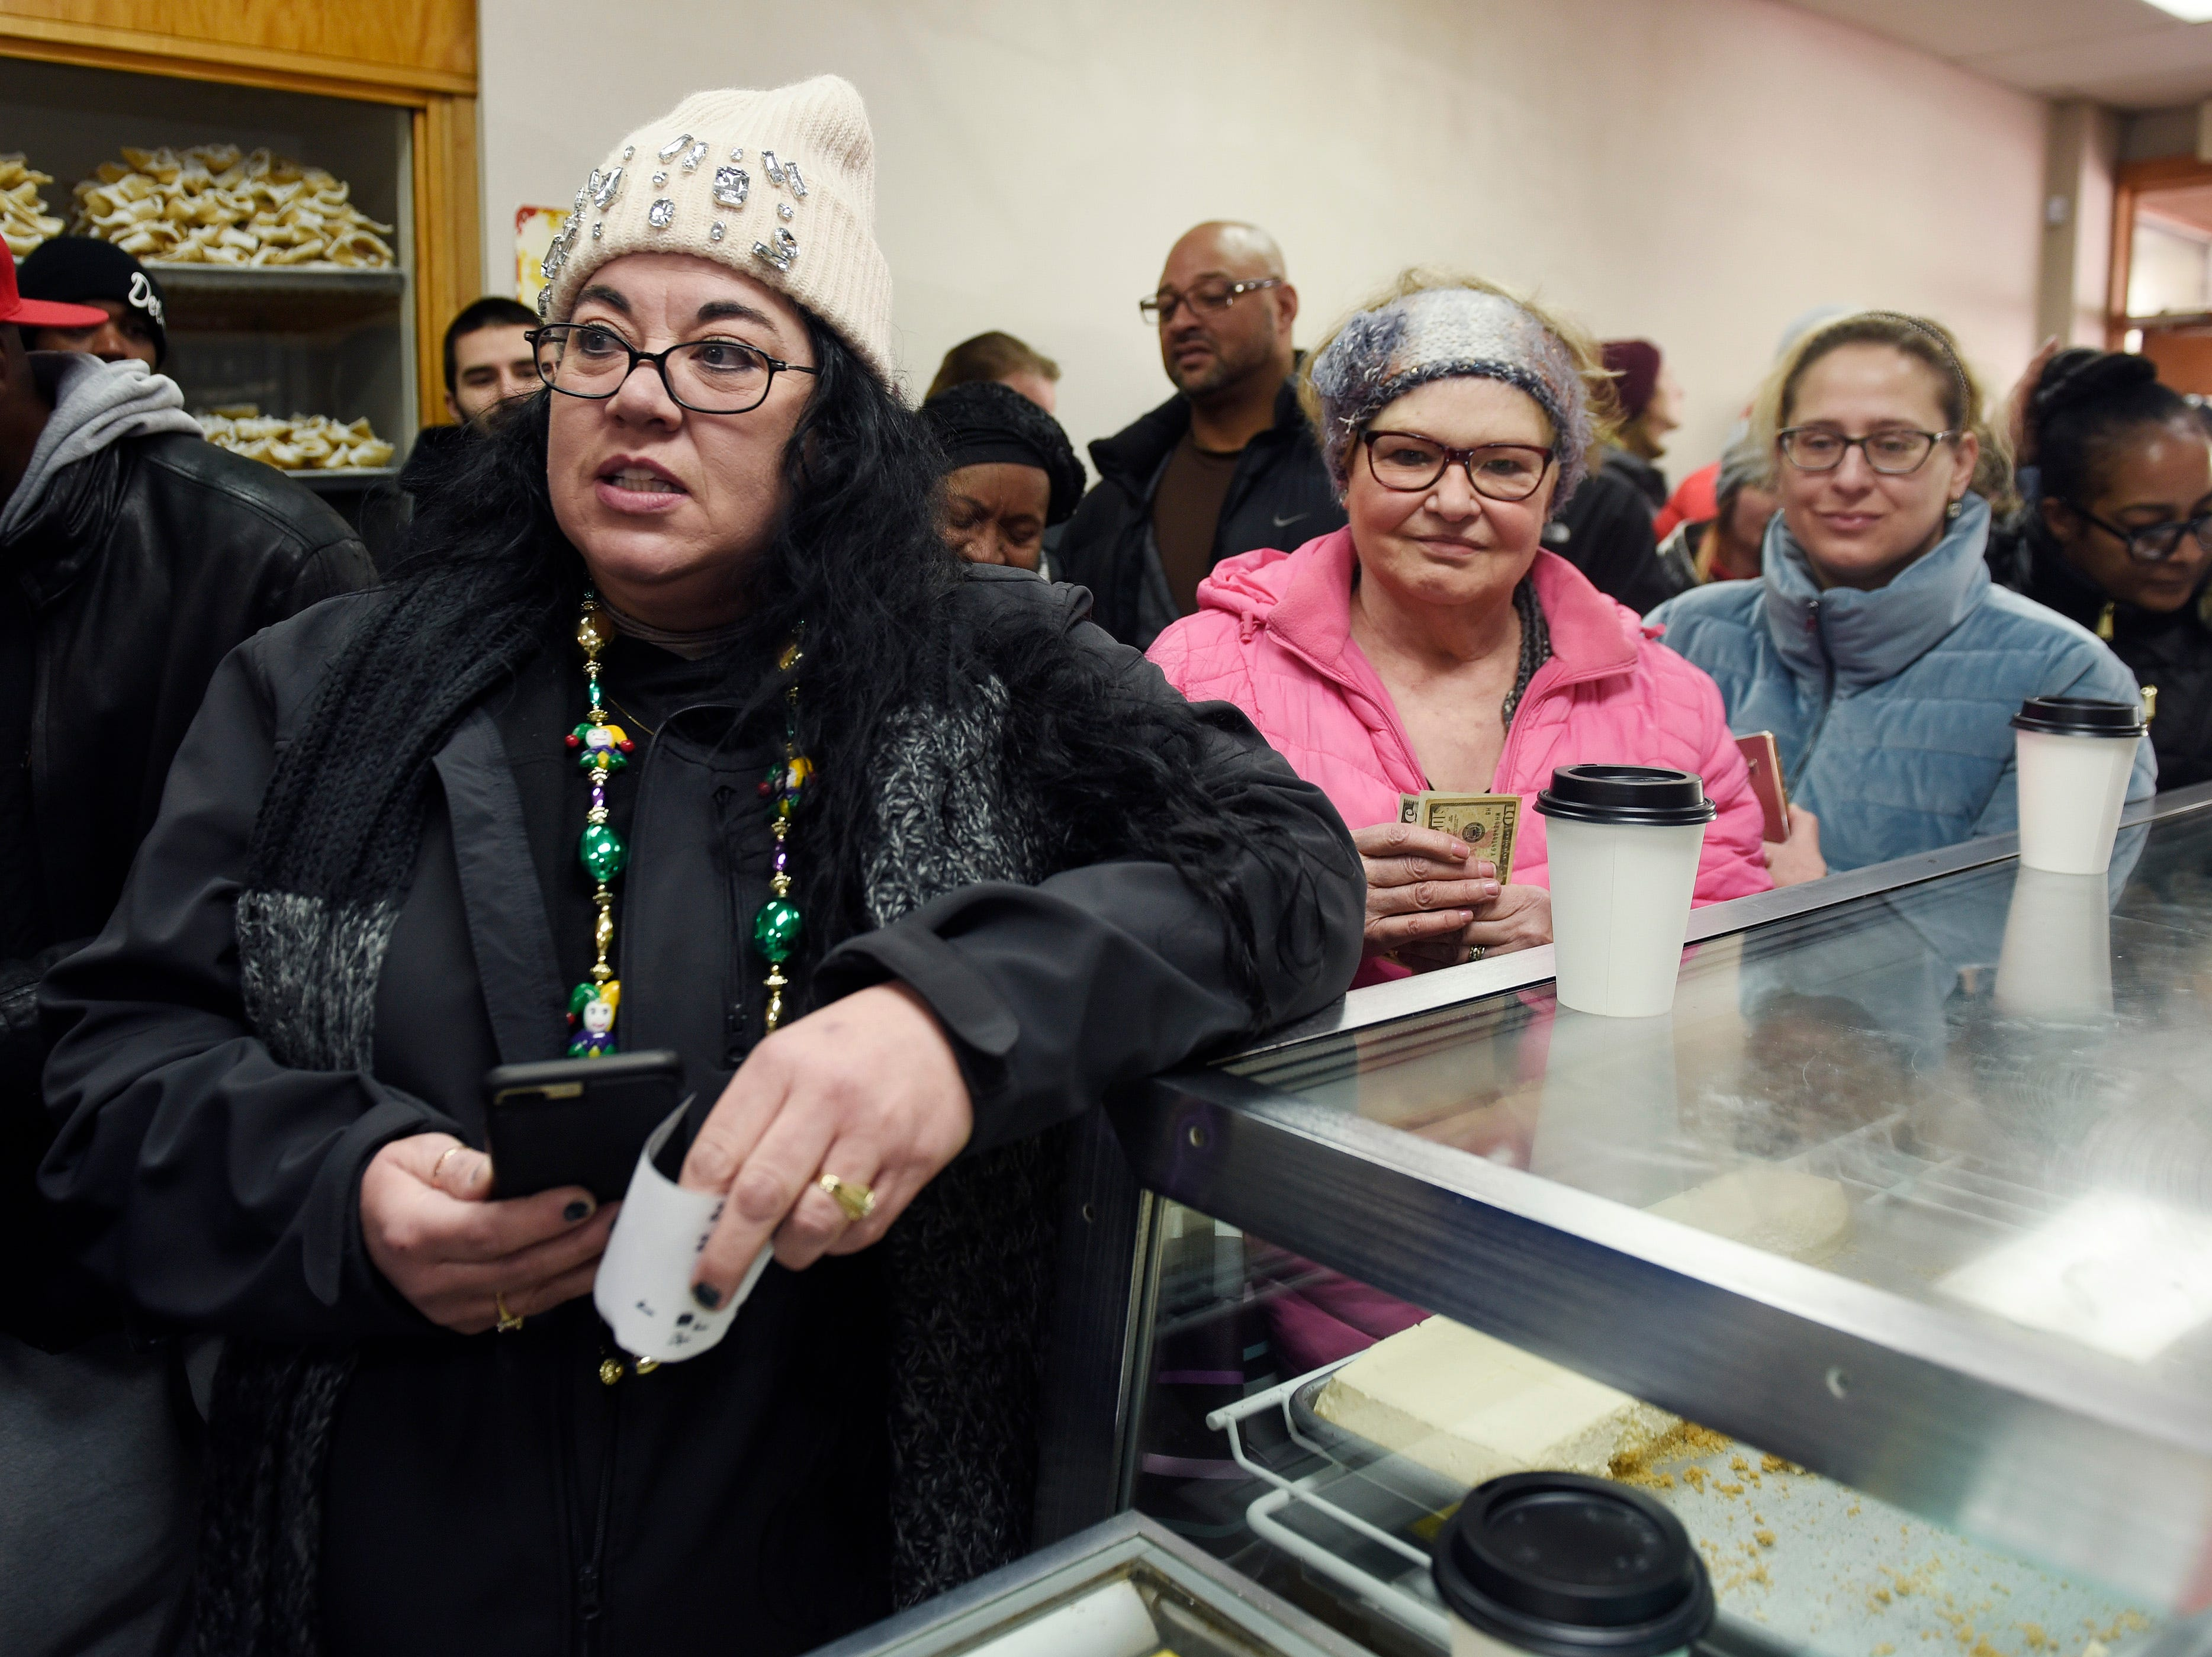 Koleen Schaf, (l), of Tayor and Caroline Stokes, (r), of West Bloomfield wait in line to purchase their paczki at New Martha Washington Bakery.